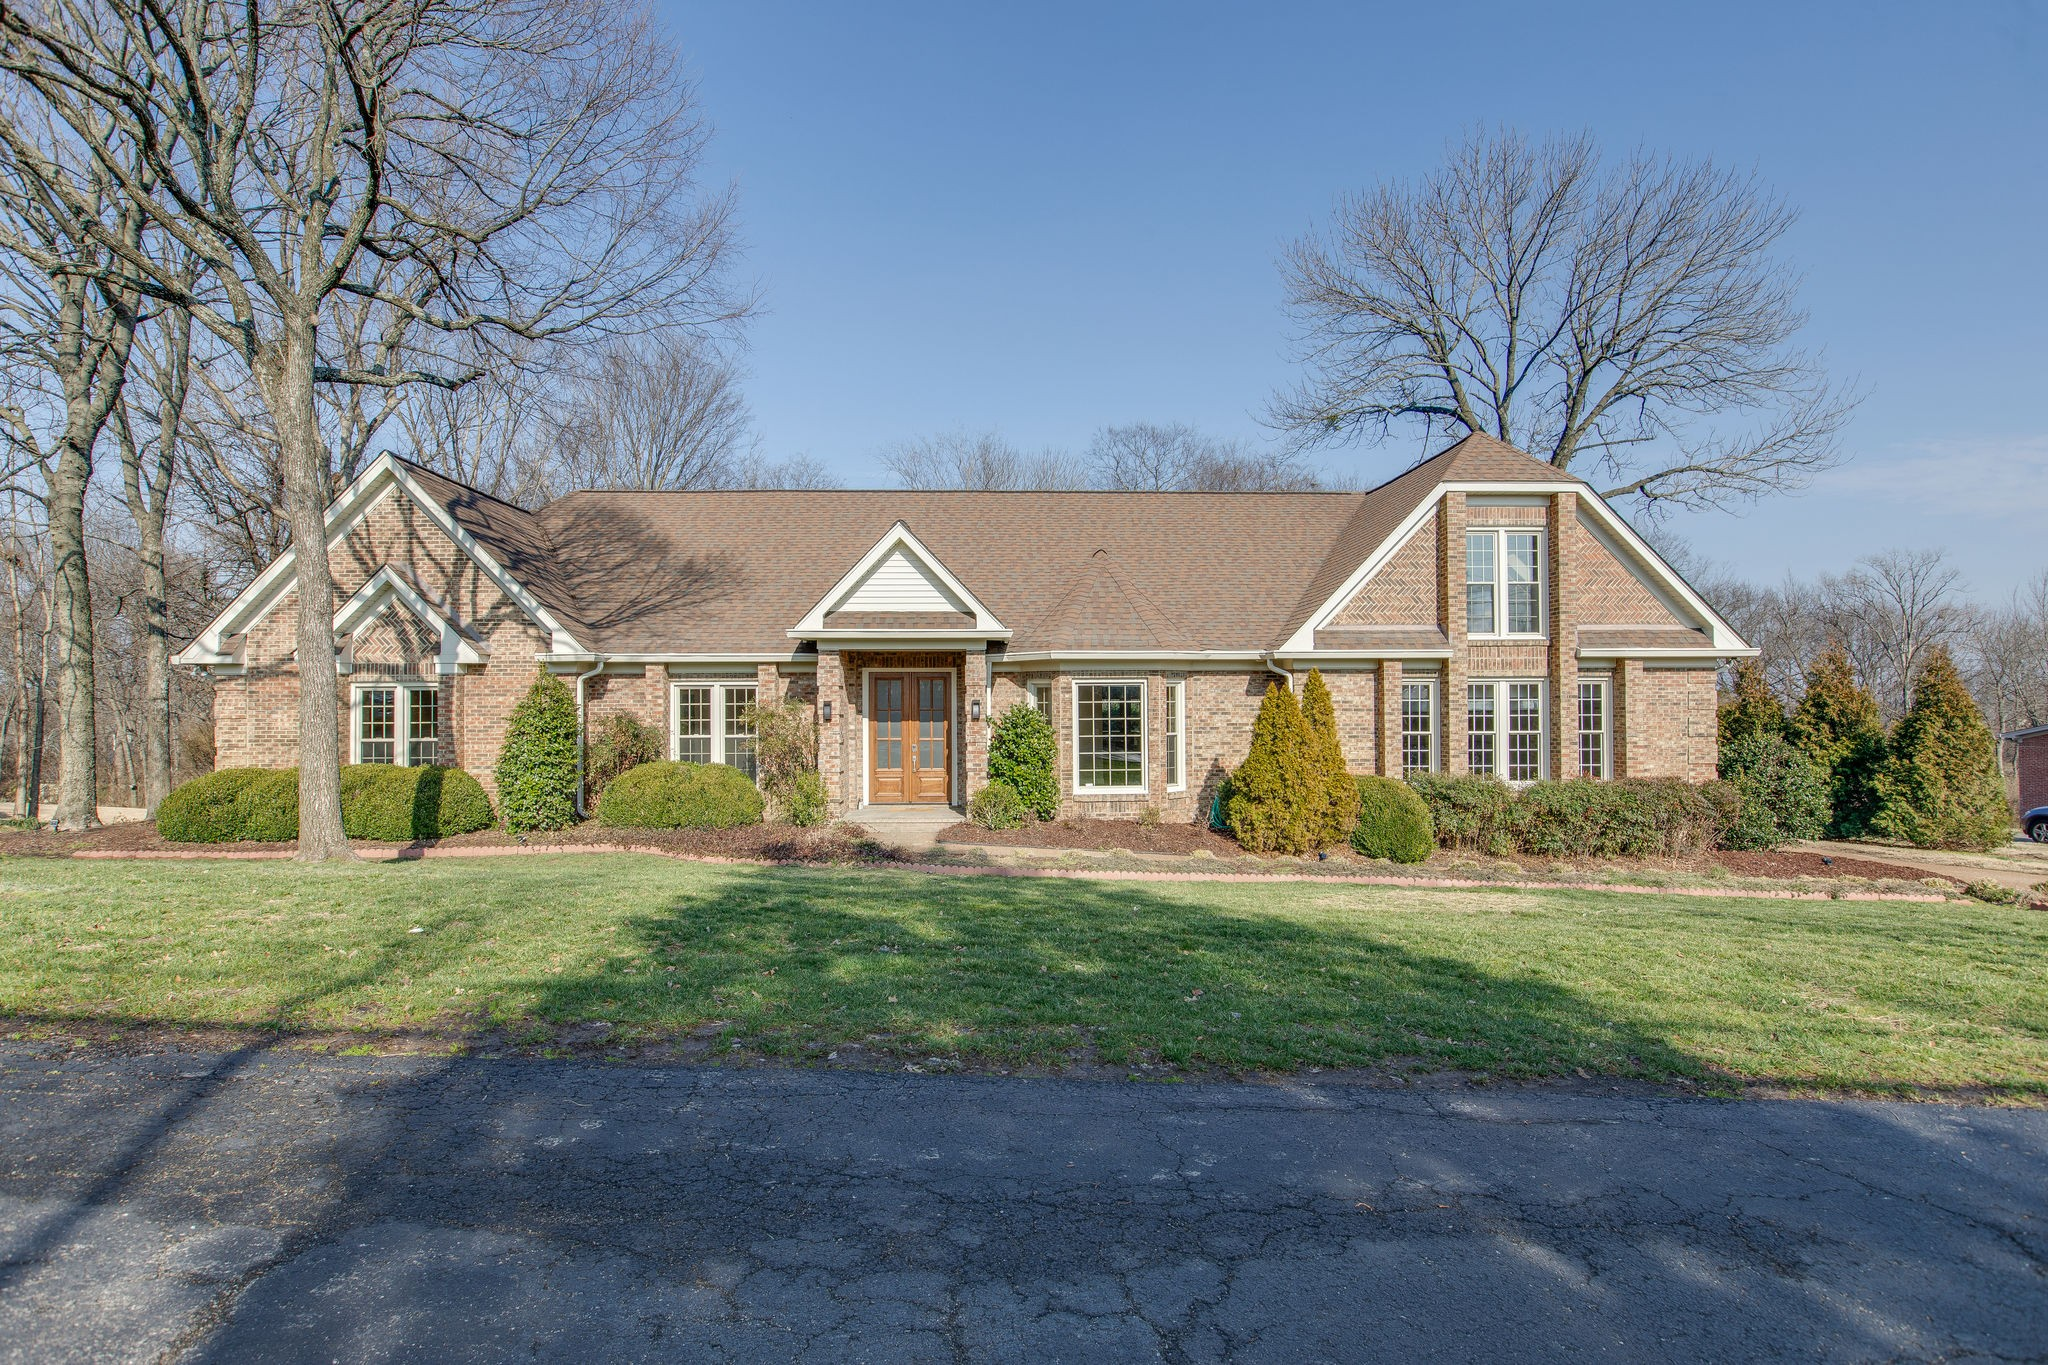 758 Peach Orchard Dr, Nashville, TN 37204 - Nashville, TN real estate listing